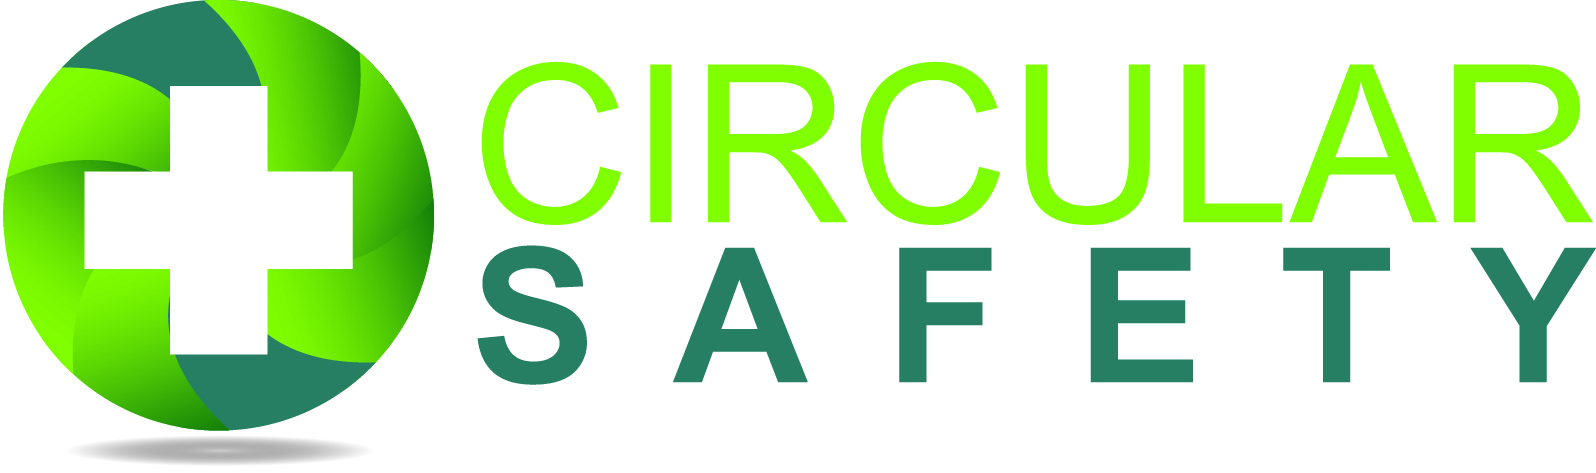 Circular Safety - Final Logo Design